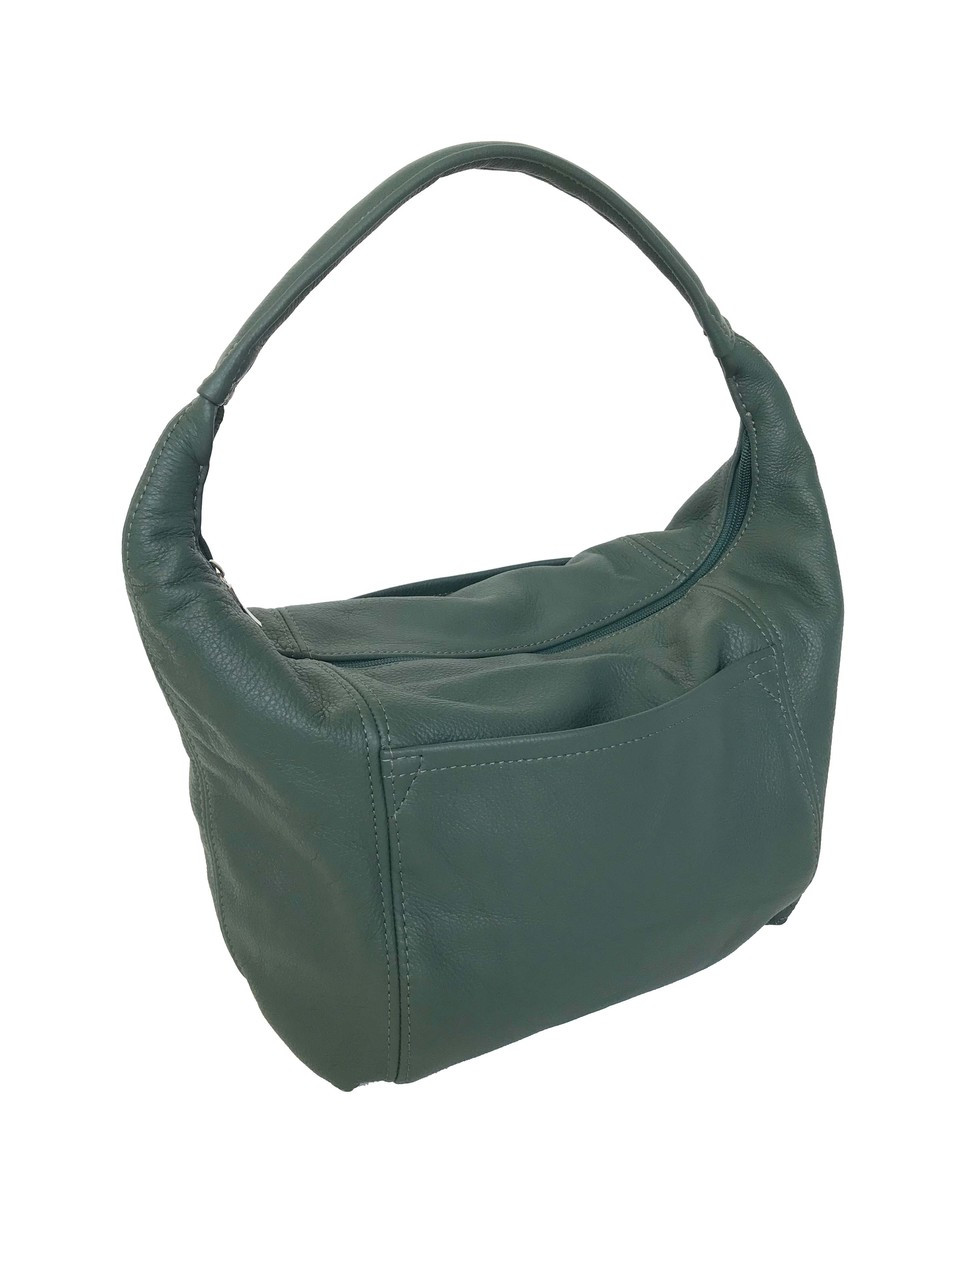 dc61e3c65ccb7a Green Leather Hobo Bag with Pockets, Everyday Handbag, Rosa - Fgalaze  Genuine Leather Bags & Accessories